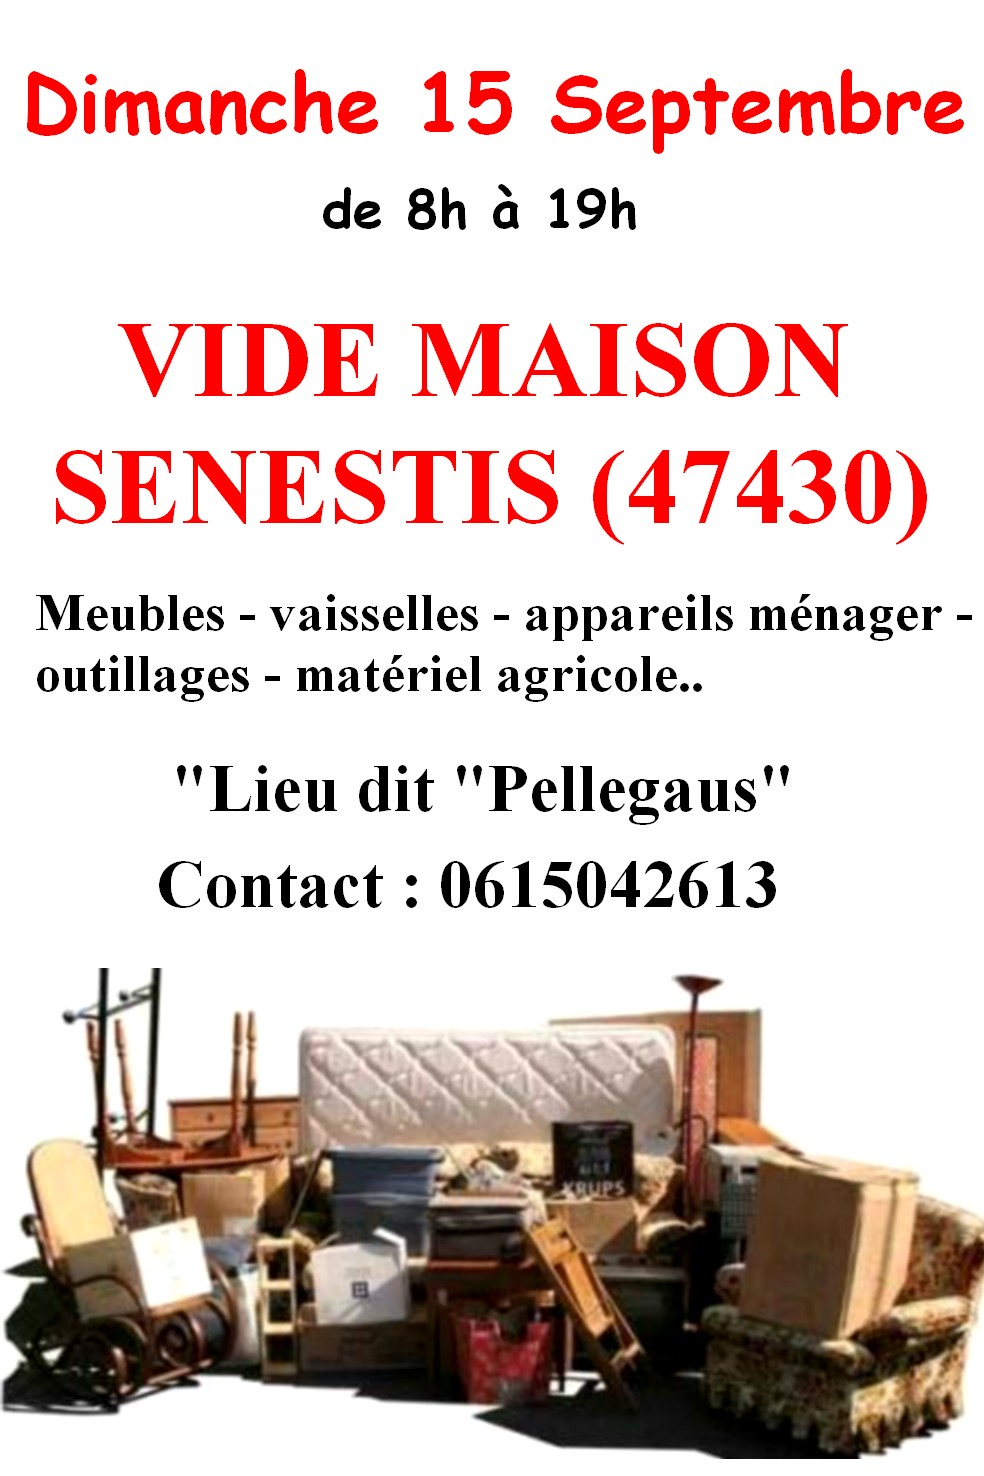 vide maison com videmaison with vide maison com finest vide maison au chteau duags with vide. Black Bedroom Furniture Sets. Home Design Ideas